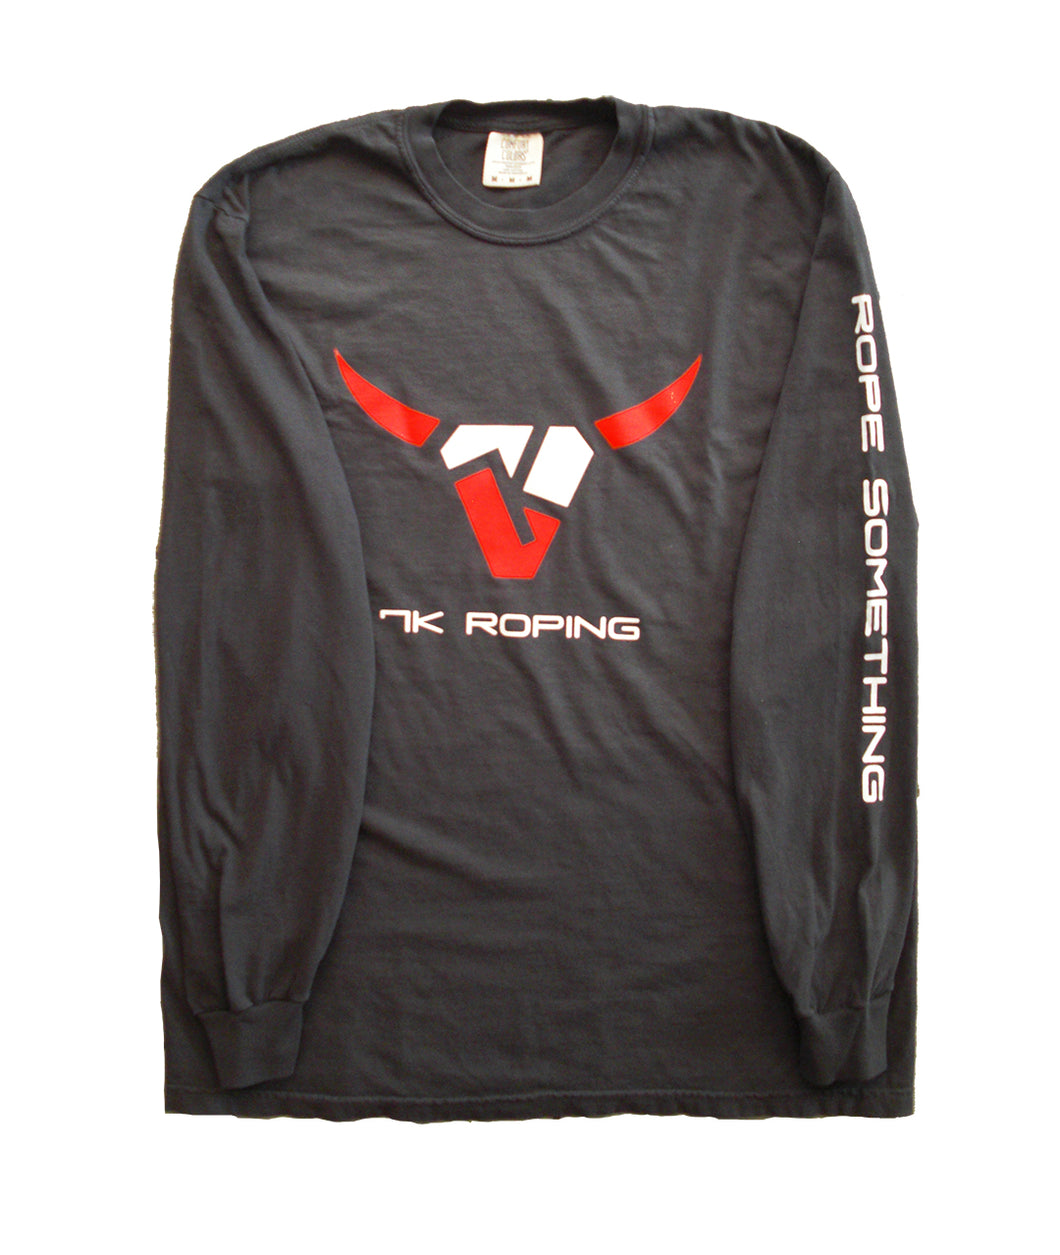 7K Roping Long Sleeve Shirt - Rope Something